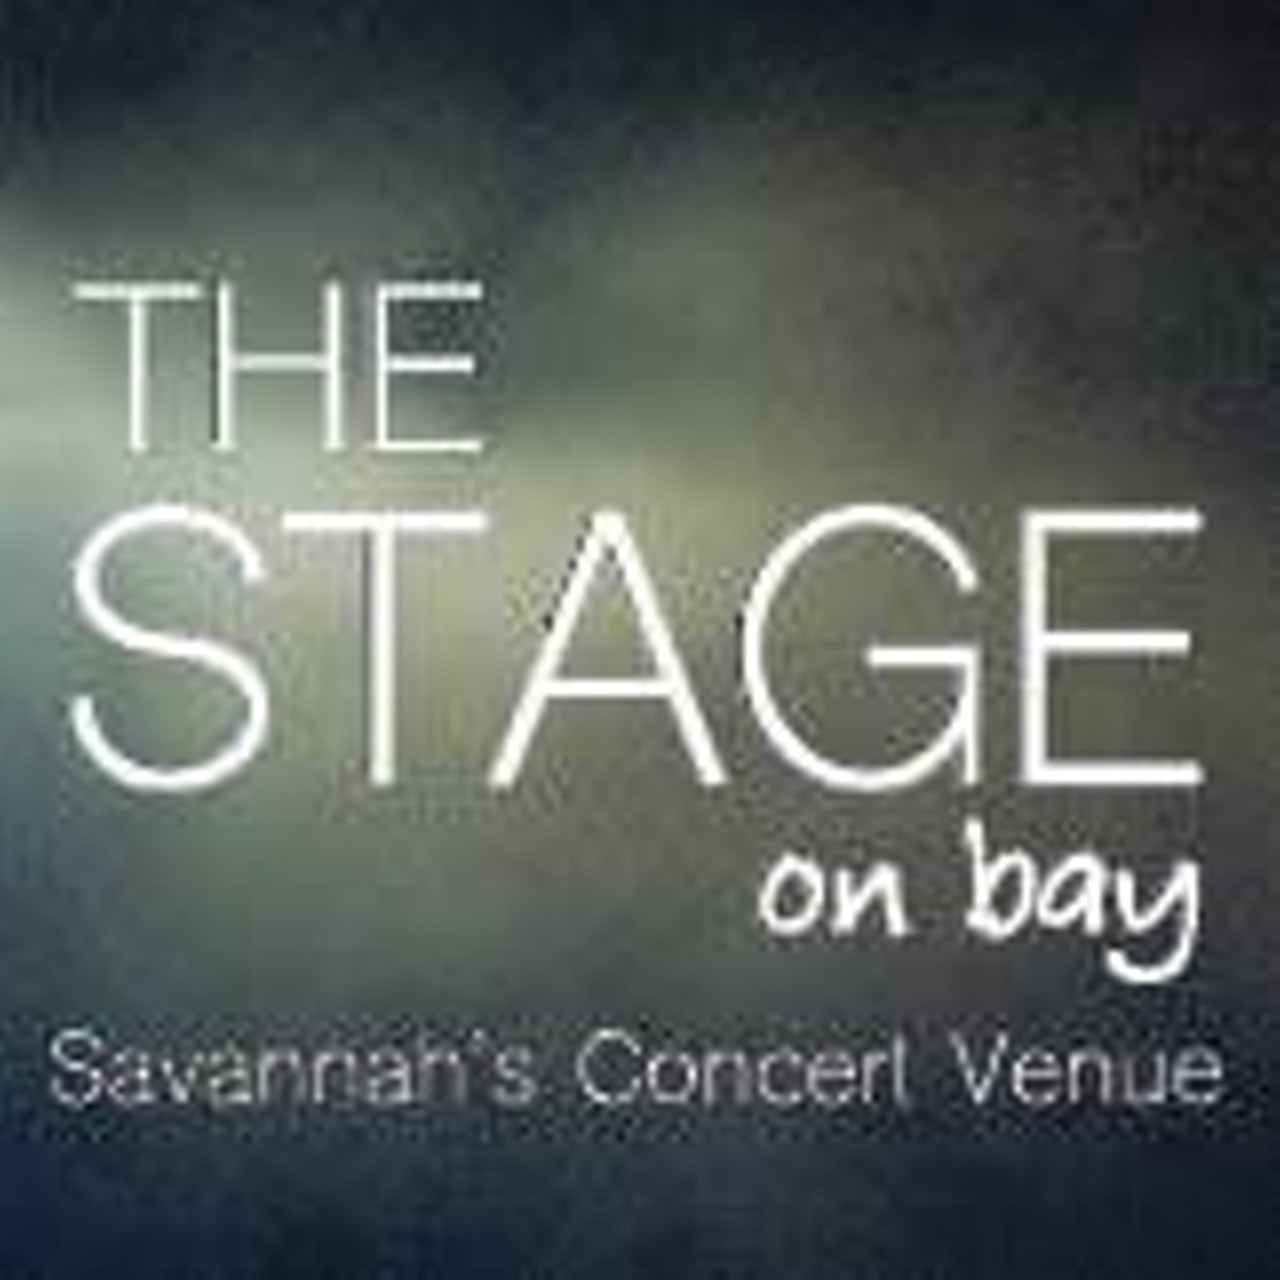 The stage on bay savannah downtown music venue live music click to enlarge 1473218517943744474998956642597052951430555ng nvjuhfo Images